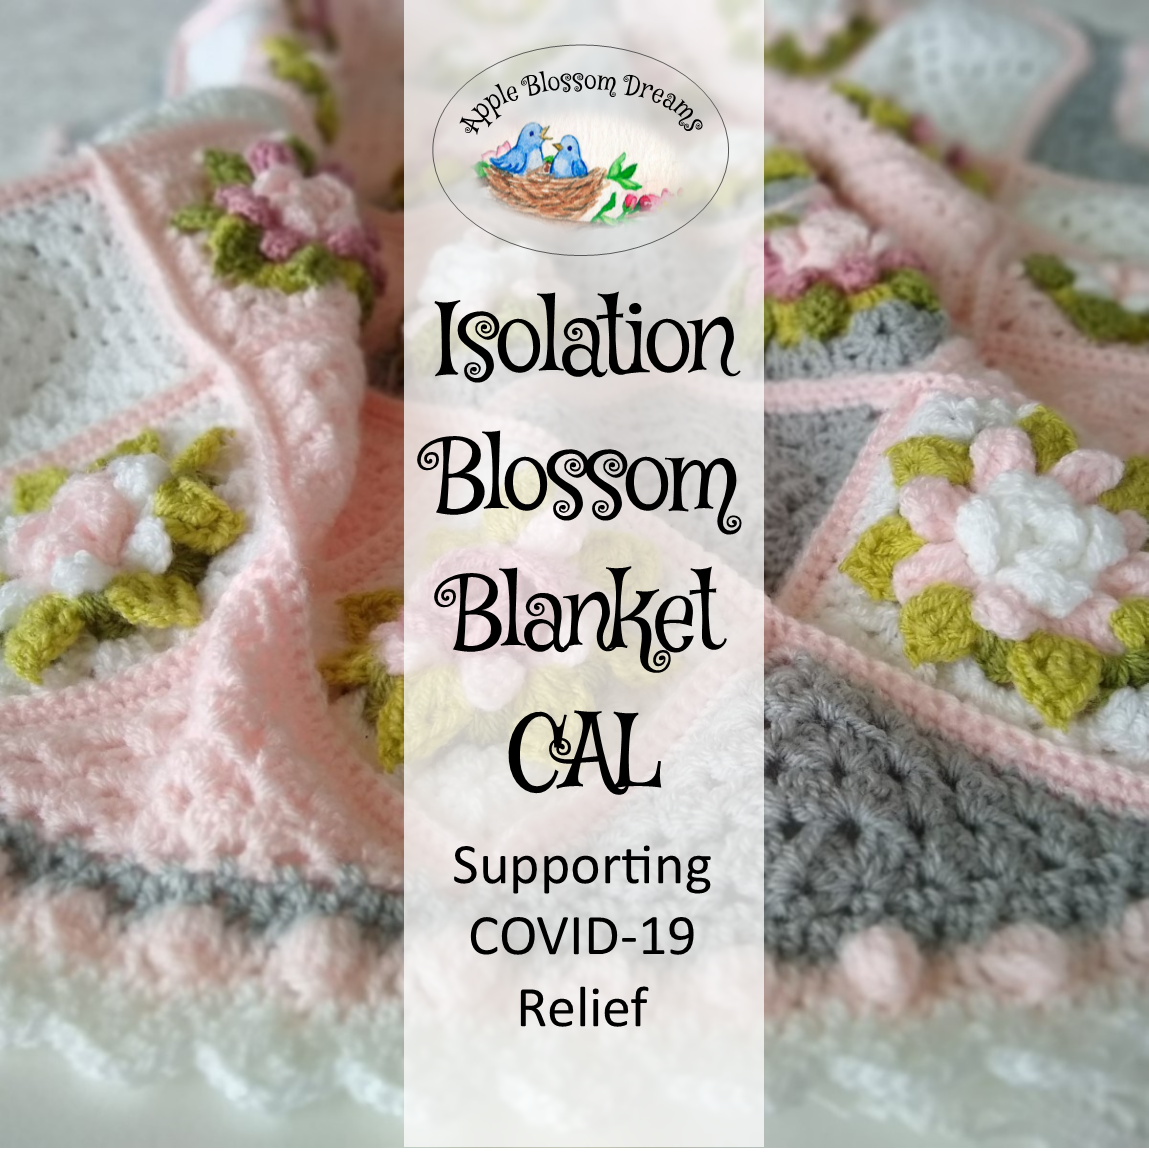 Isolation Blossom Blanket Crochet-A-Long Supporting COVID-19 Relief